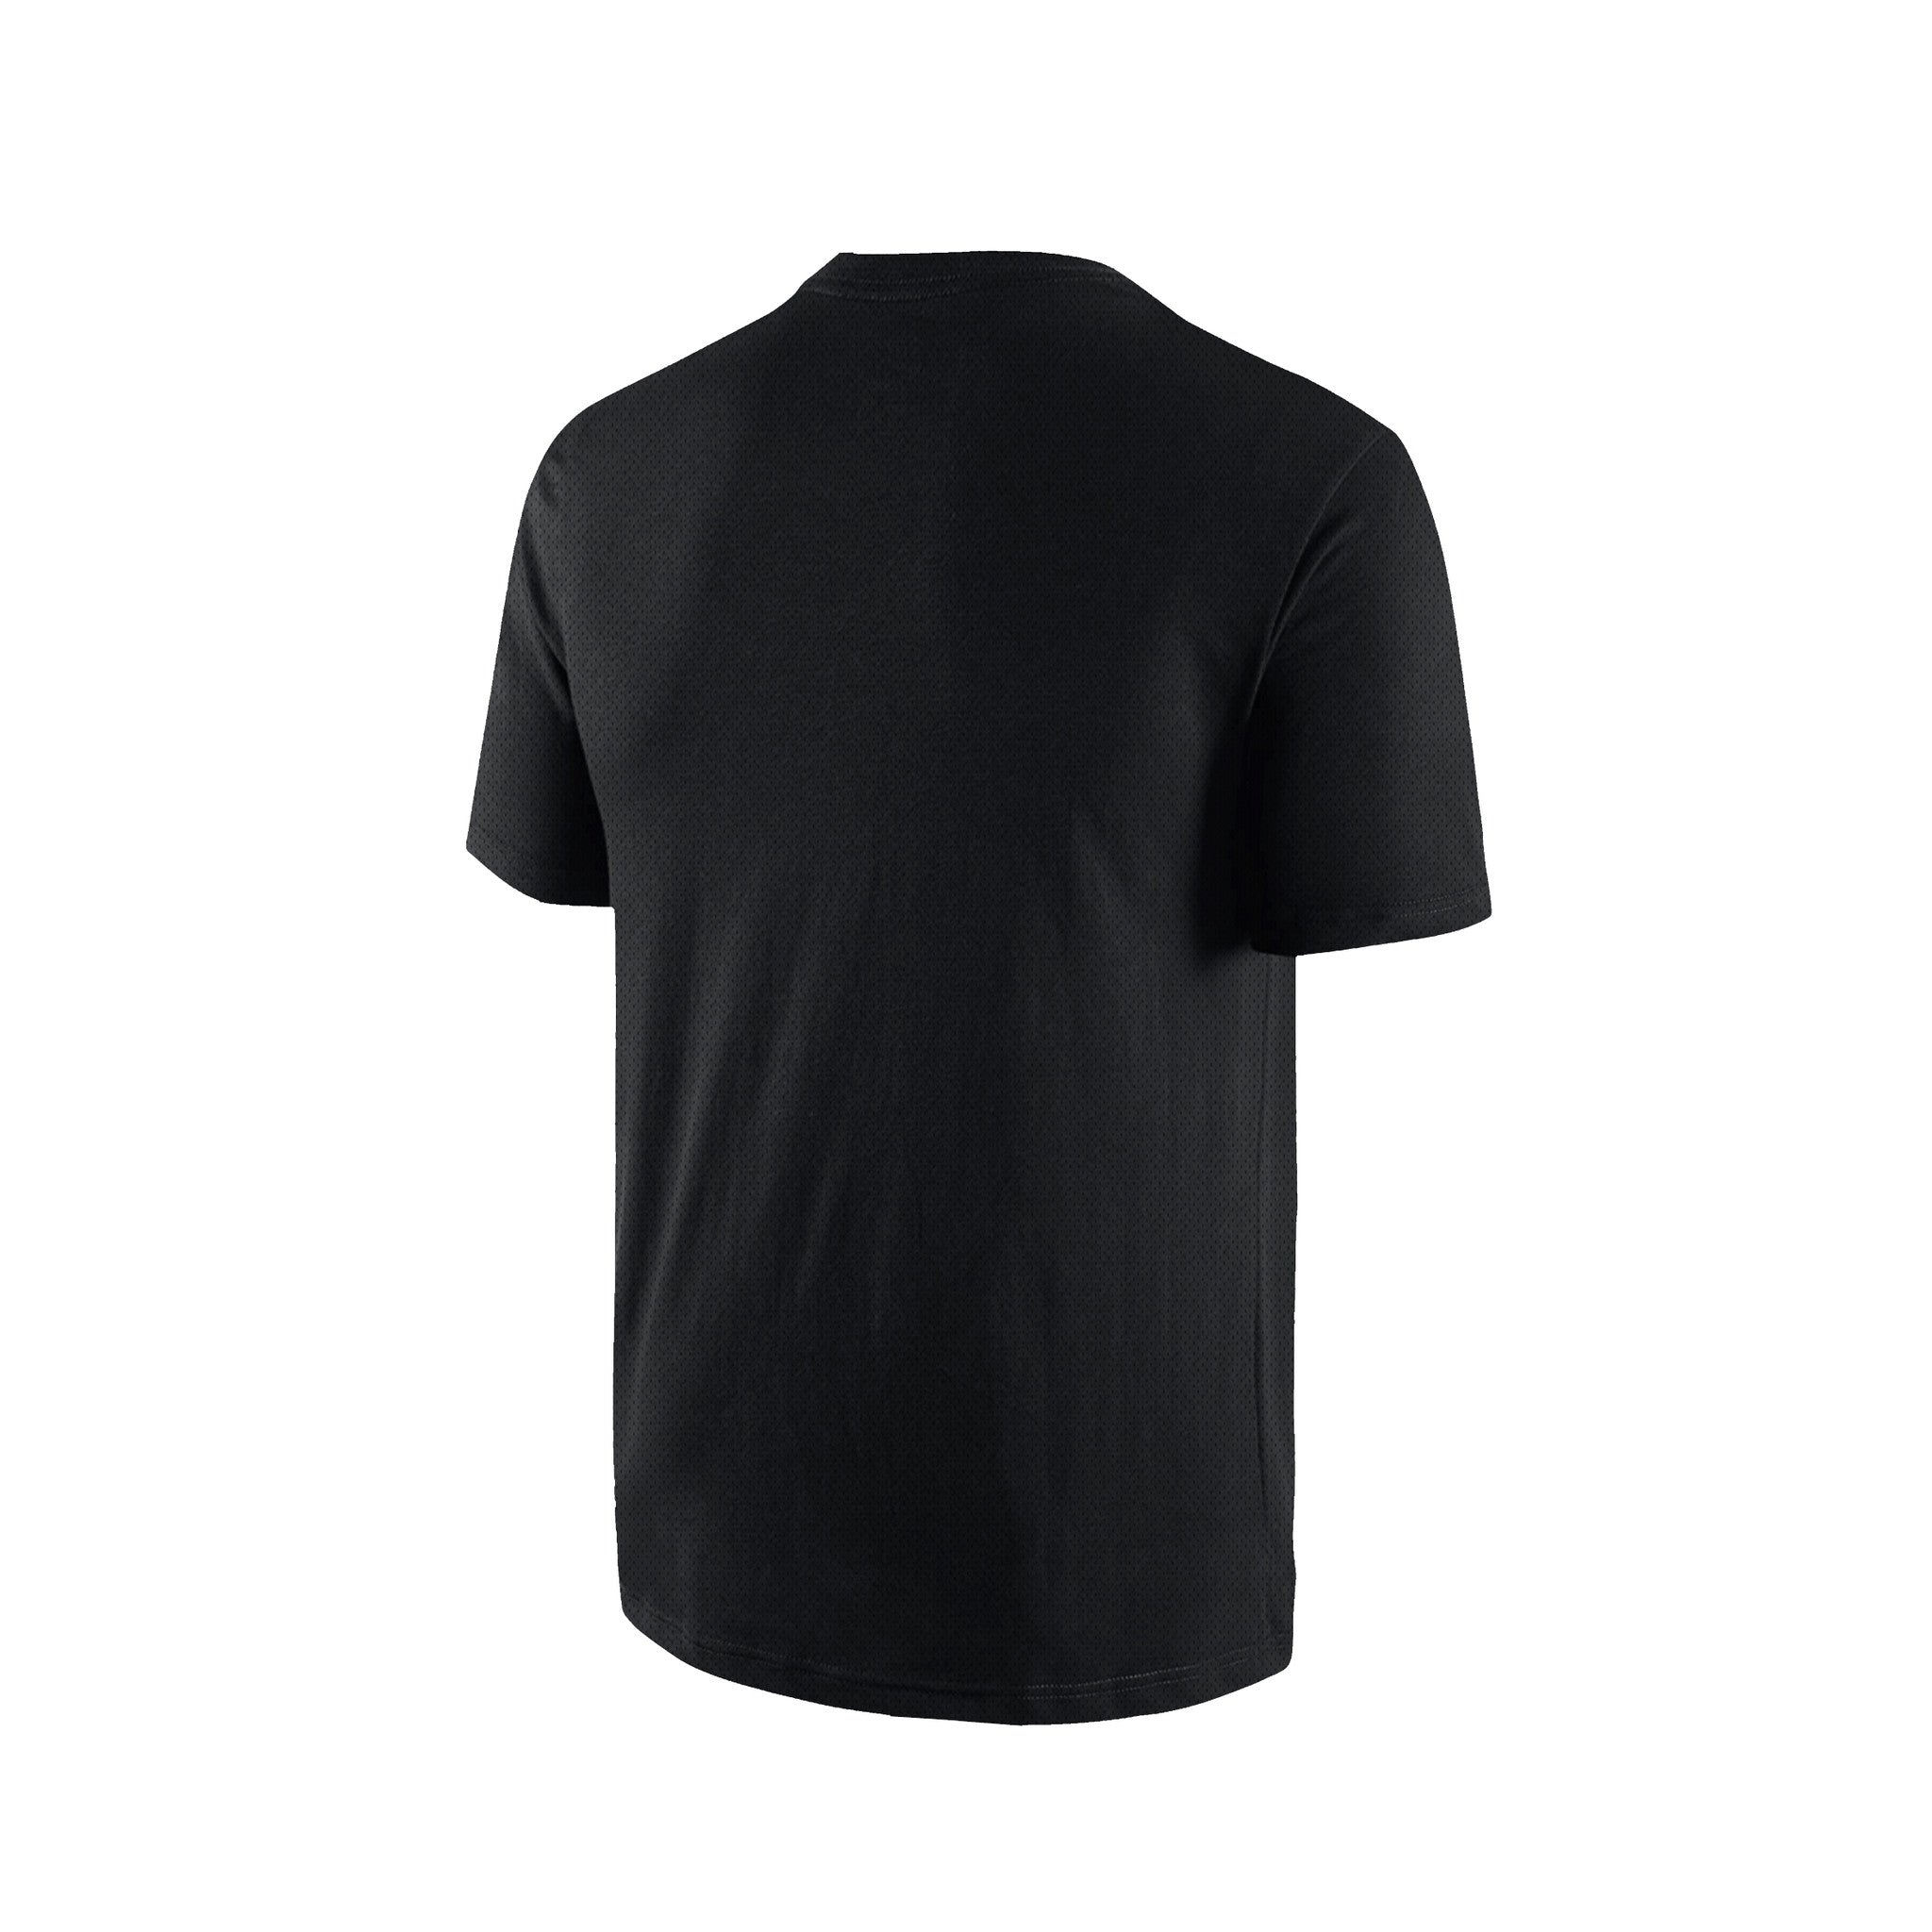 SportyFish Black Series black t-shirt(japanese): Atlantic Sailfish back view